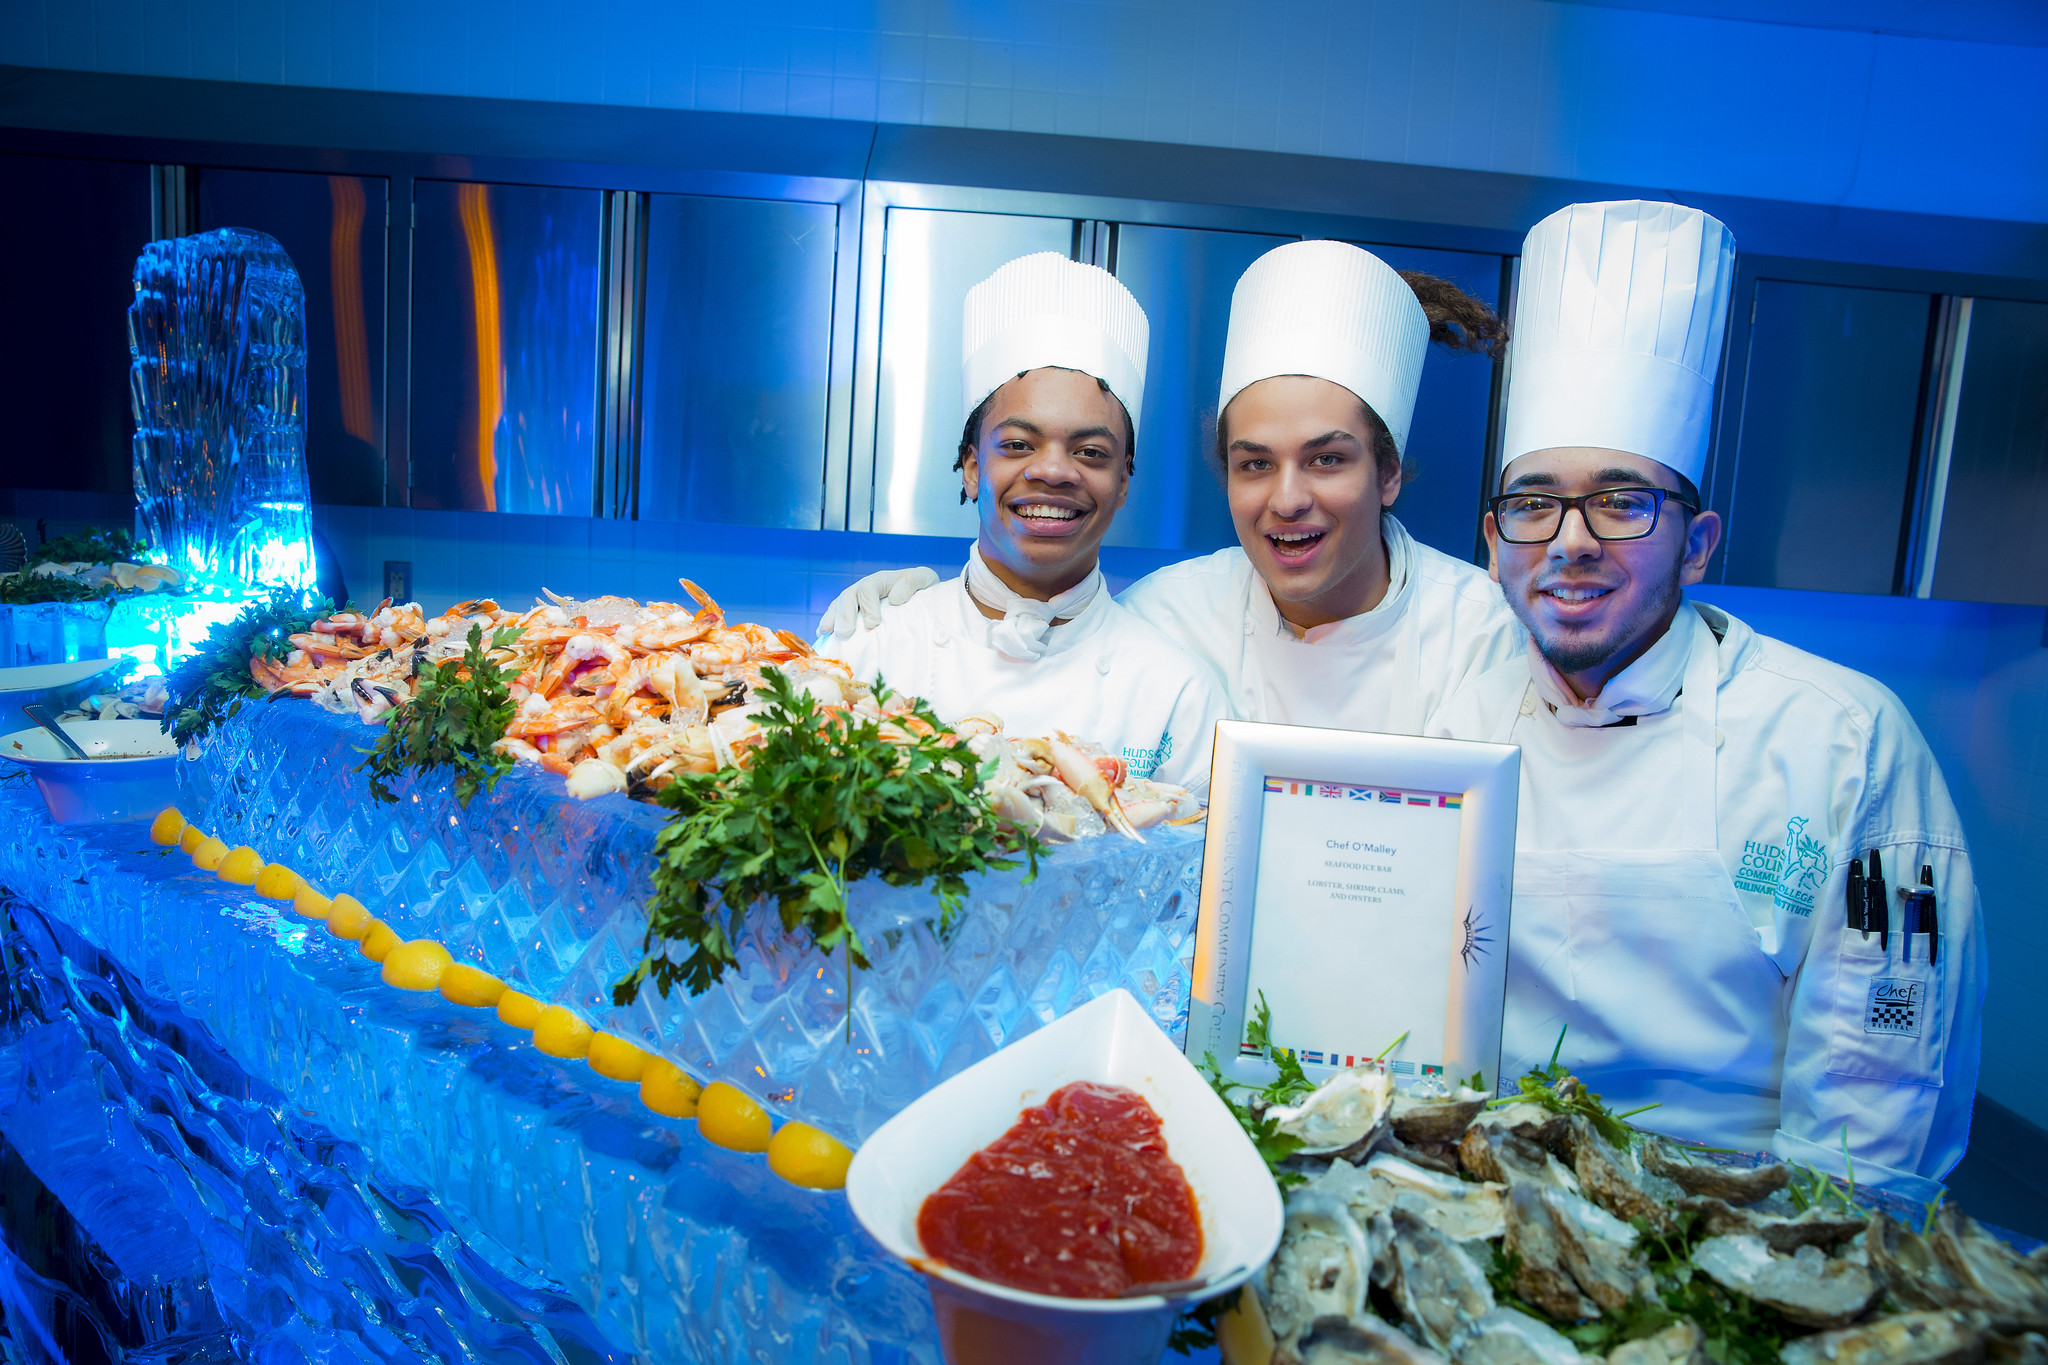 Culinary students at a event